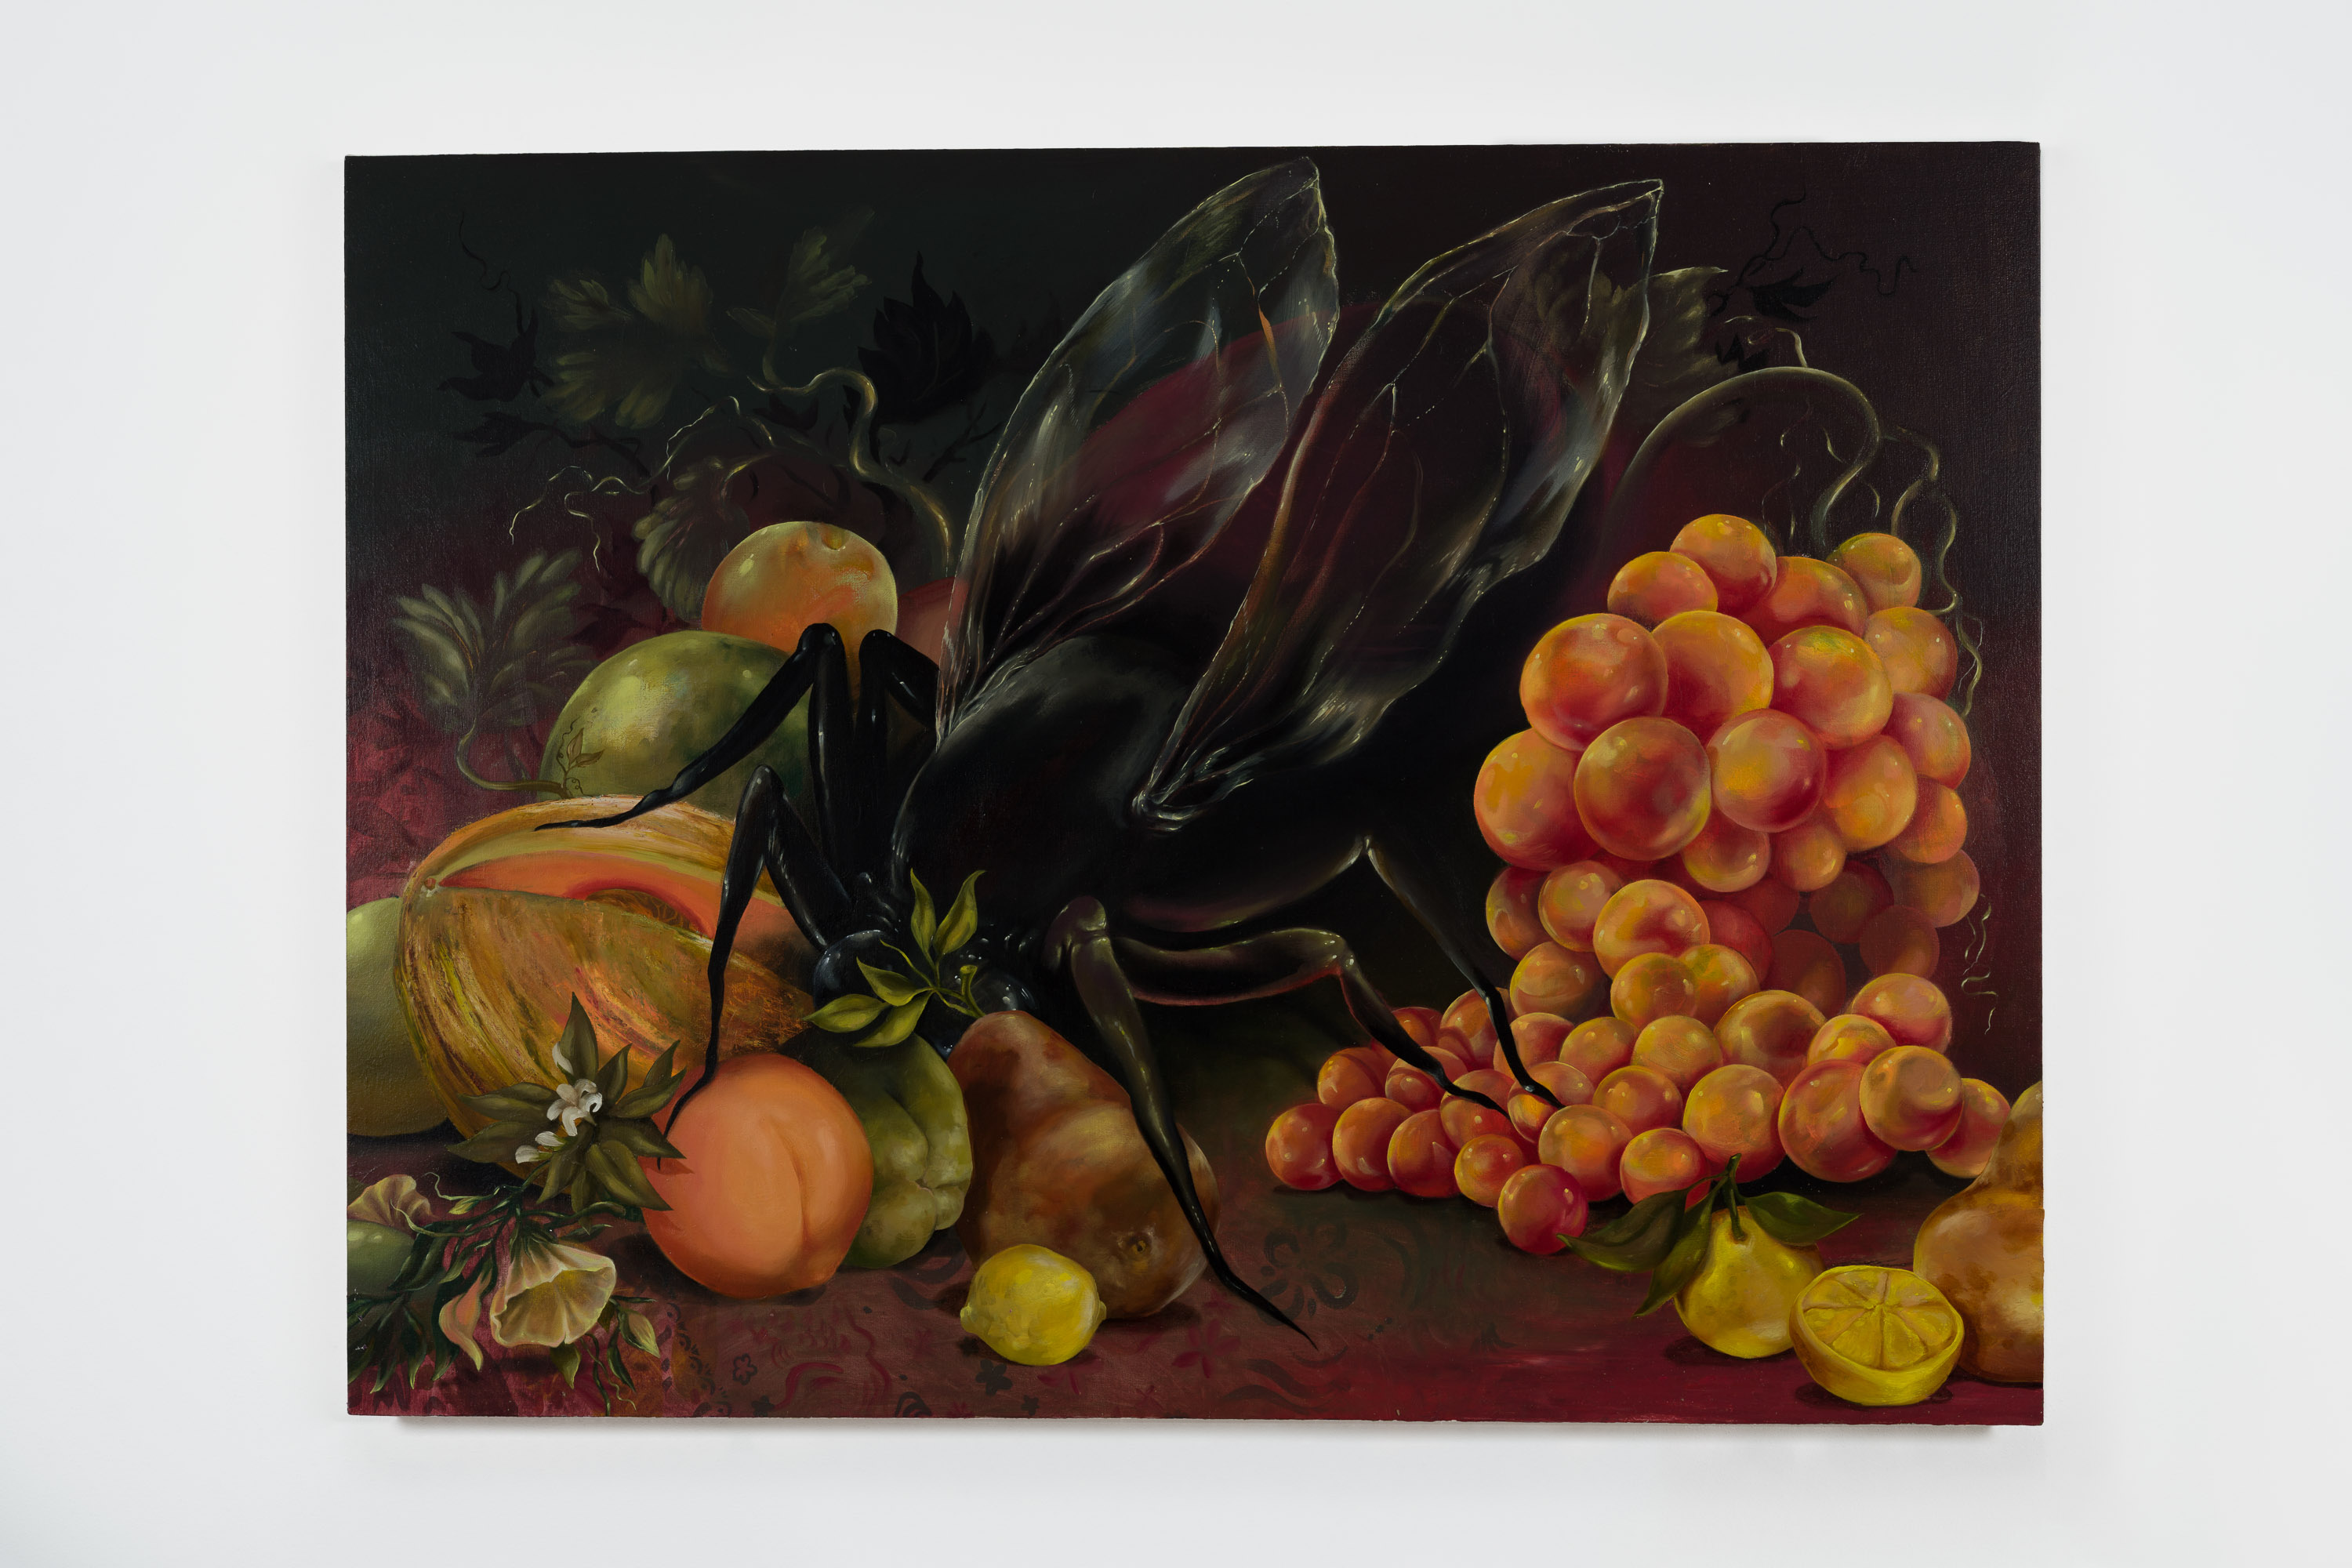 A dark, richly colored painting of a large, black insect with translucent wings crouched over various orange- and green-colored fruit—honey dew melon, peaches, plums, lemons, orange grapes—all spilling across a dark red surface. The background fades from the dark red into black.